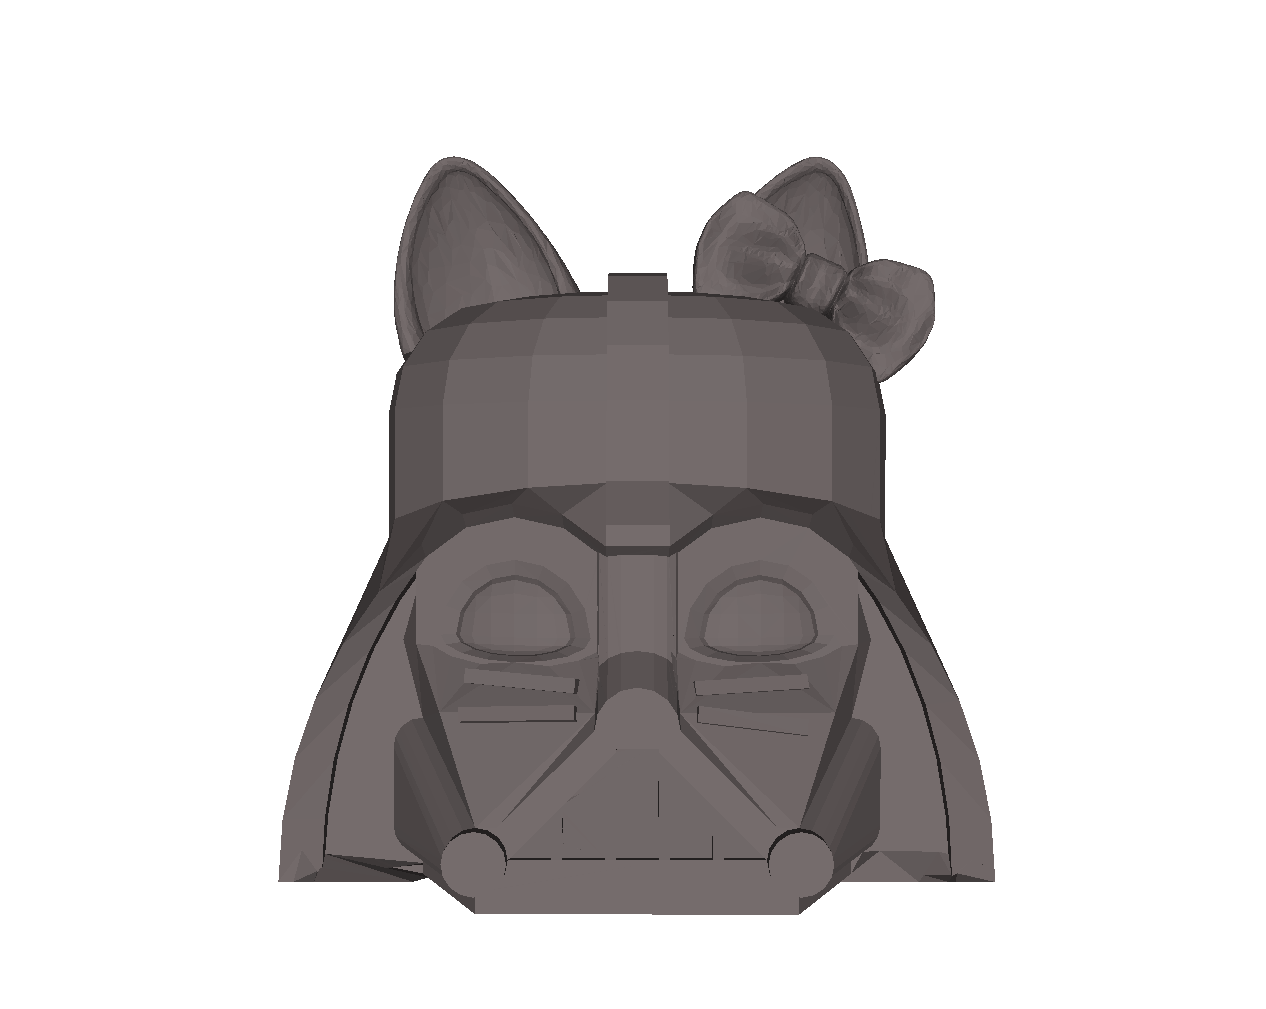 Darth Vader combined with Hello Kitty 3D model